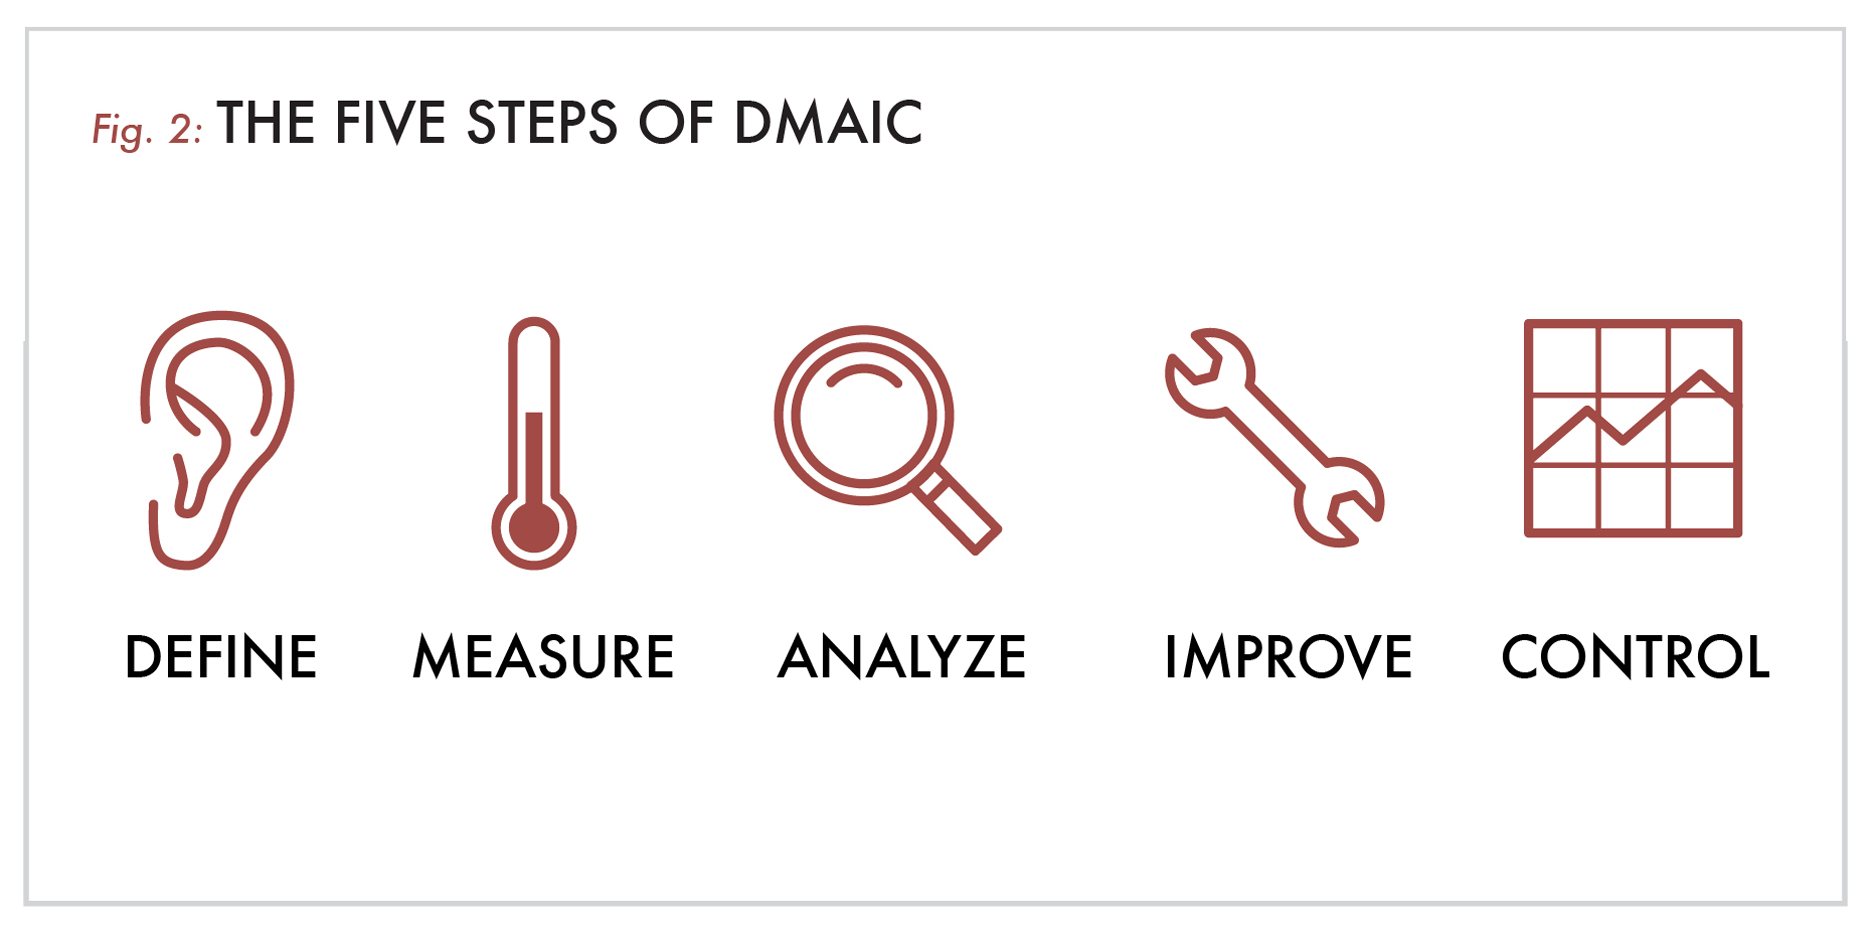 The Five Steps of DMAIC